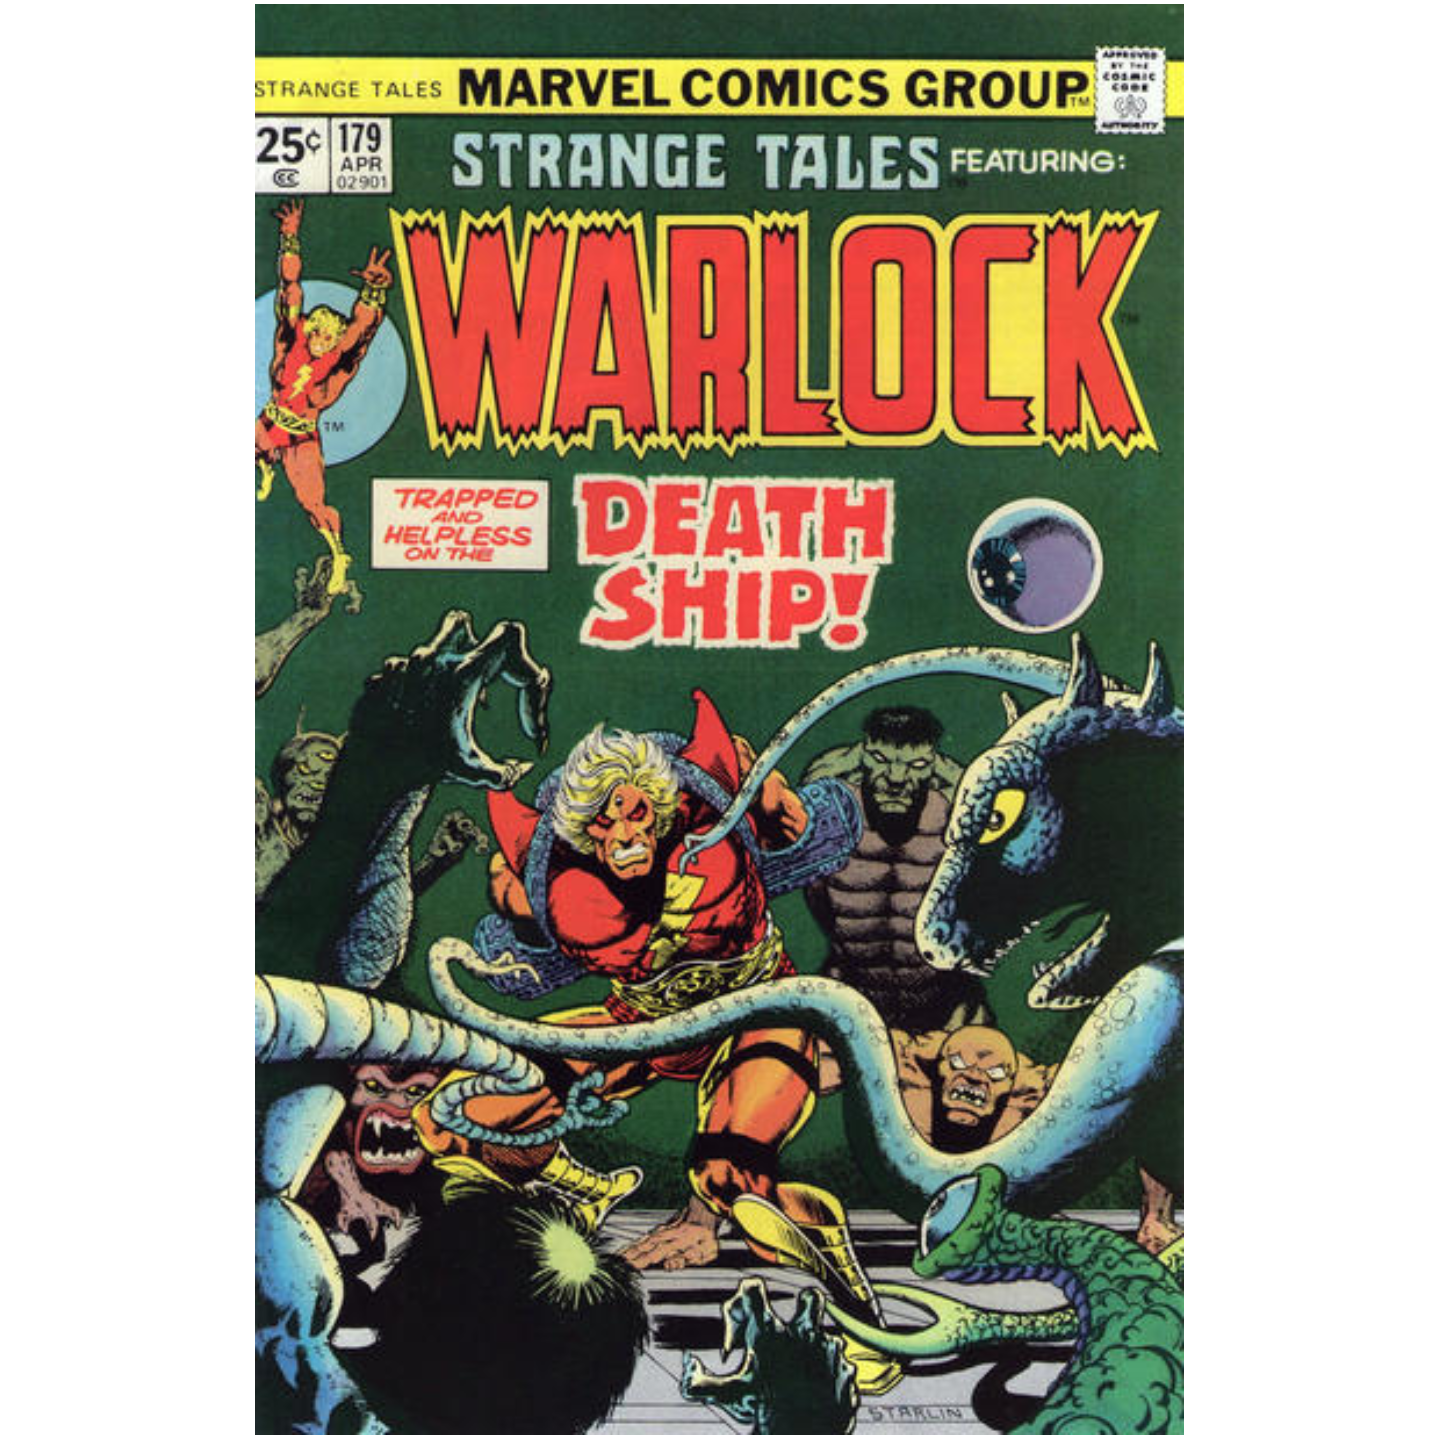 STRANGE TALES FEATURING WARLOCK #179 (KEY ISSUE)